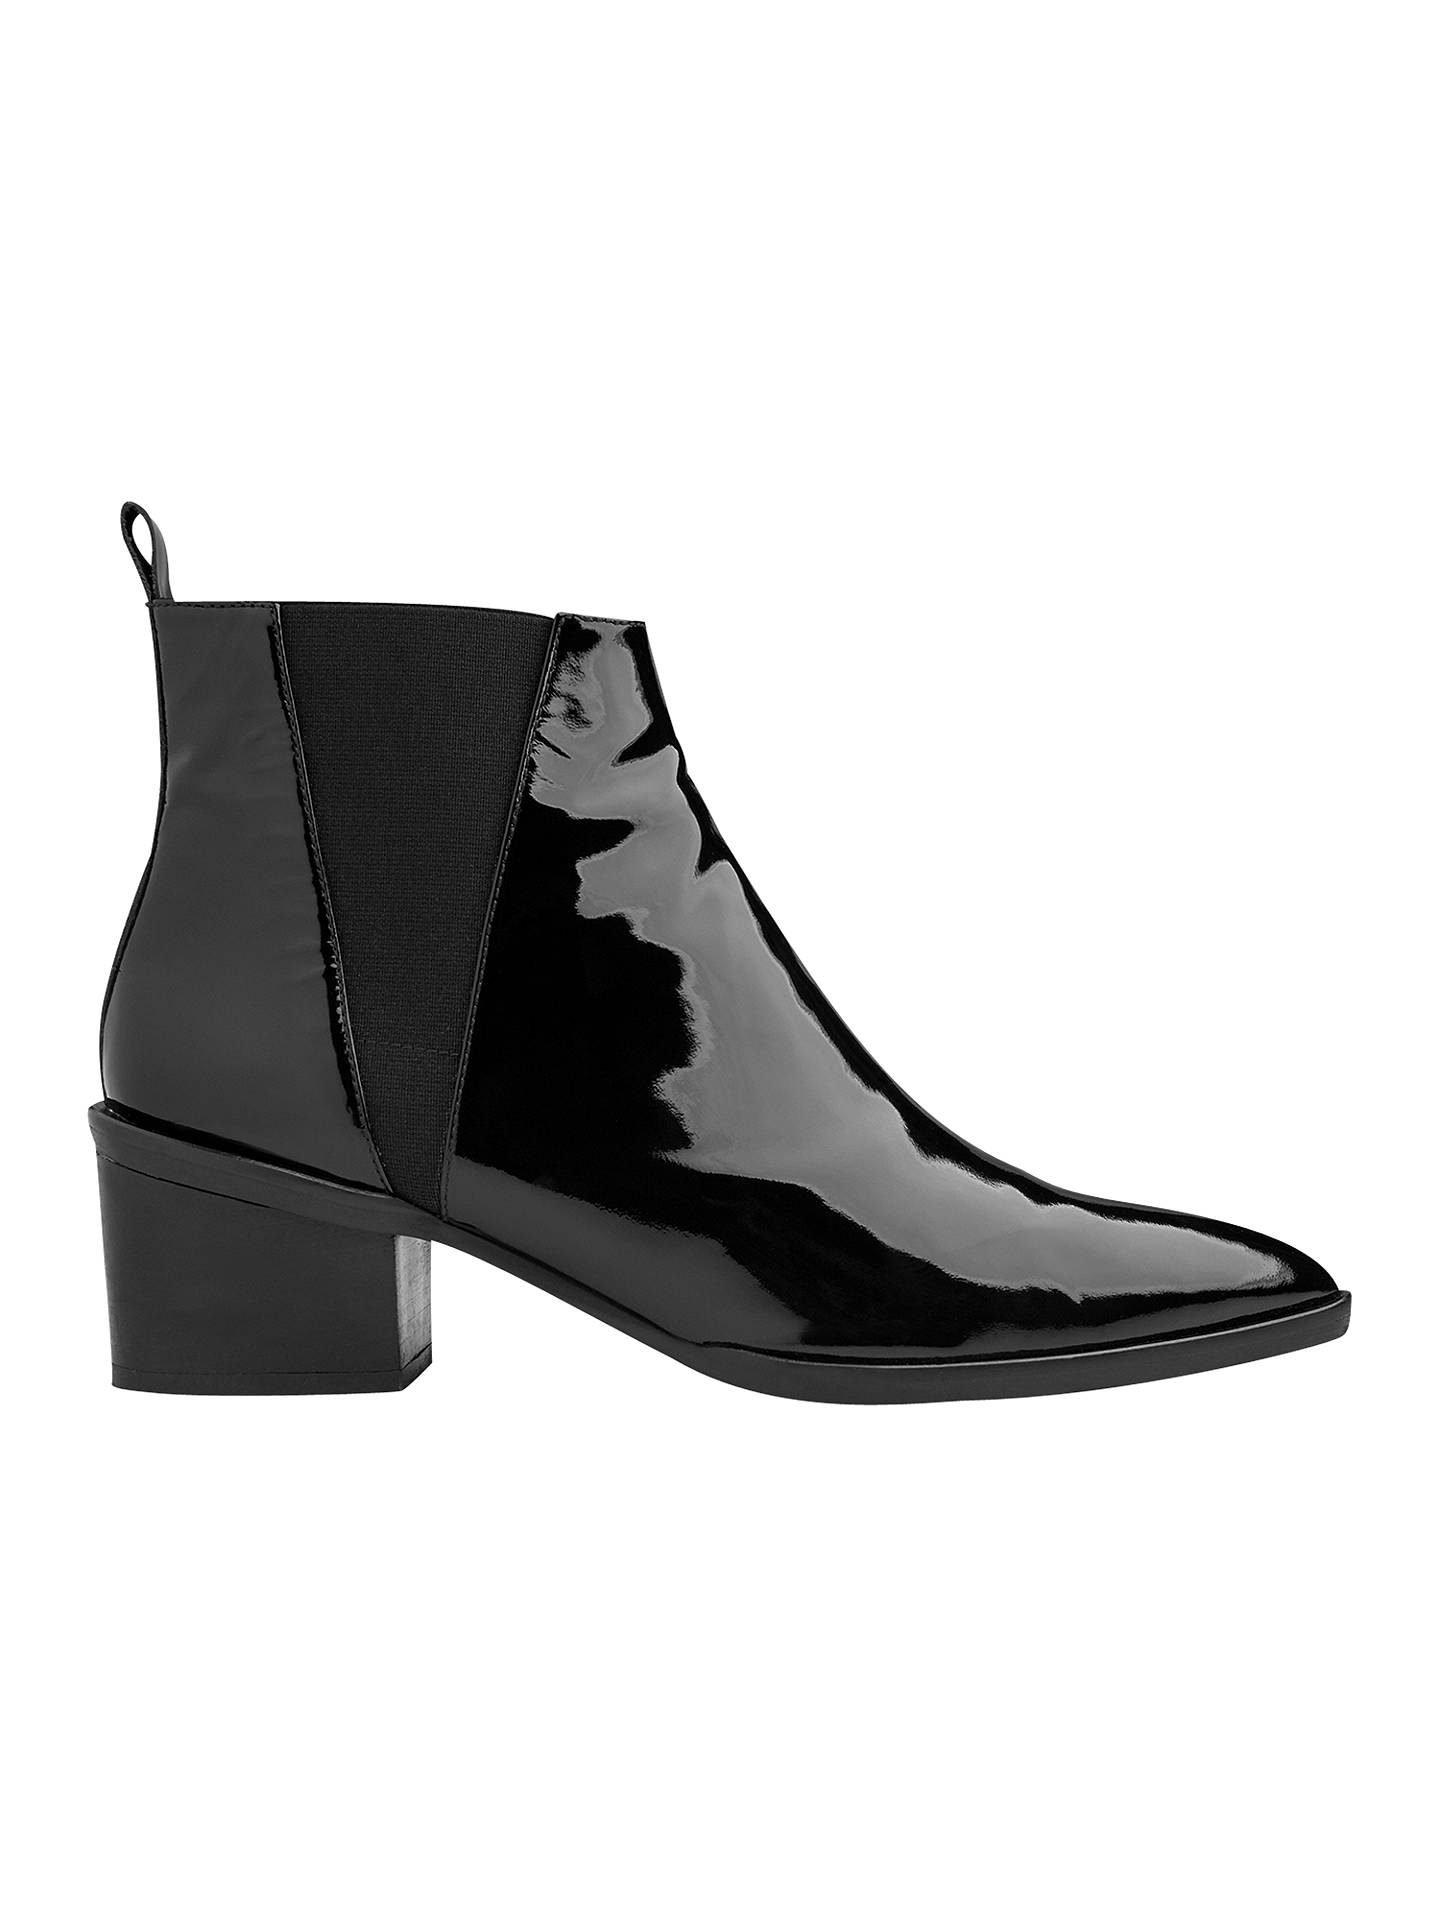 6384b930515 Whistles Belmont Pointed Toe Block Heeled Ankle Boots, Black Patent ...